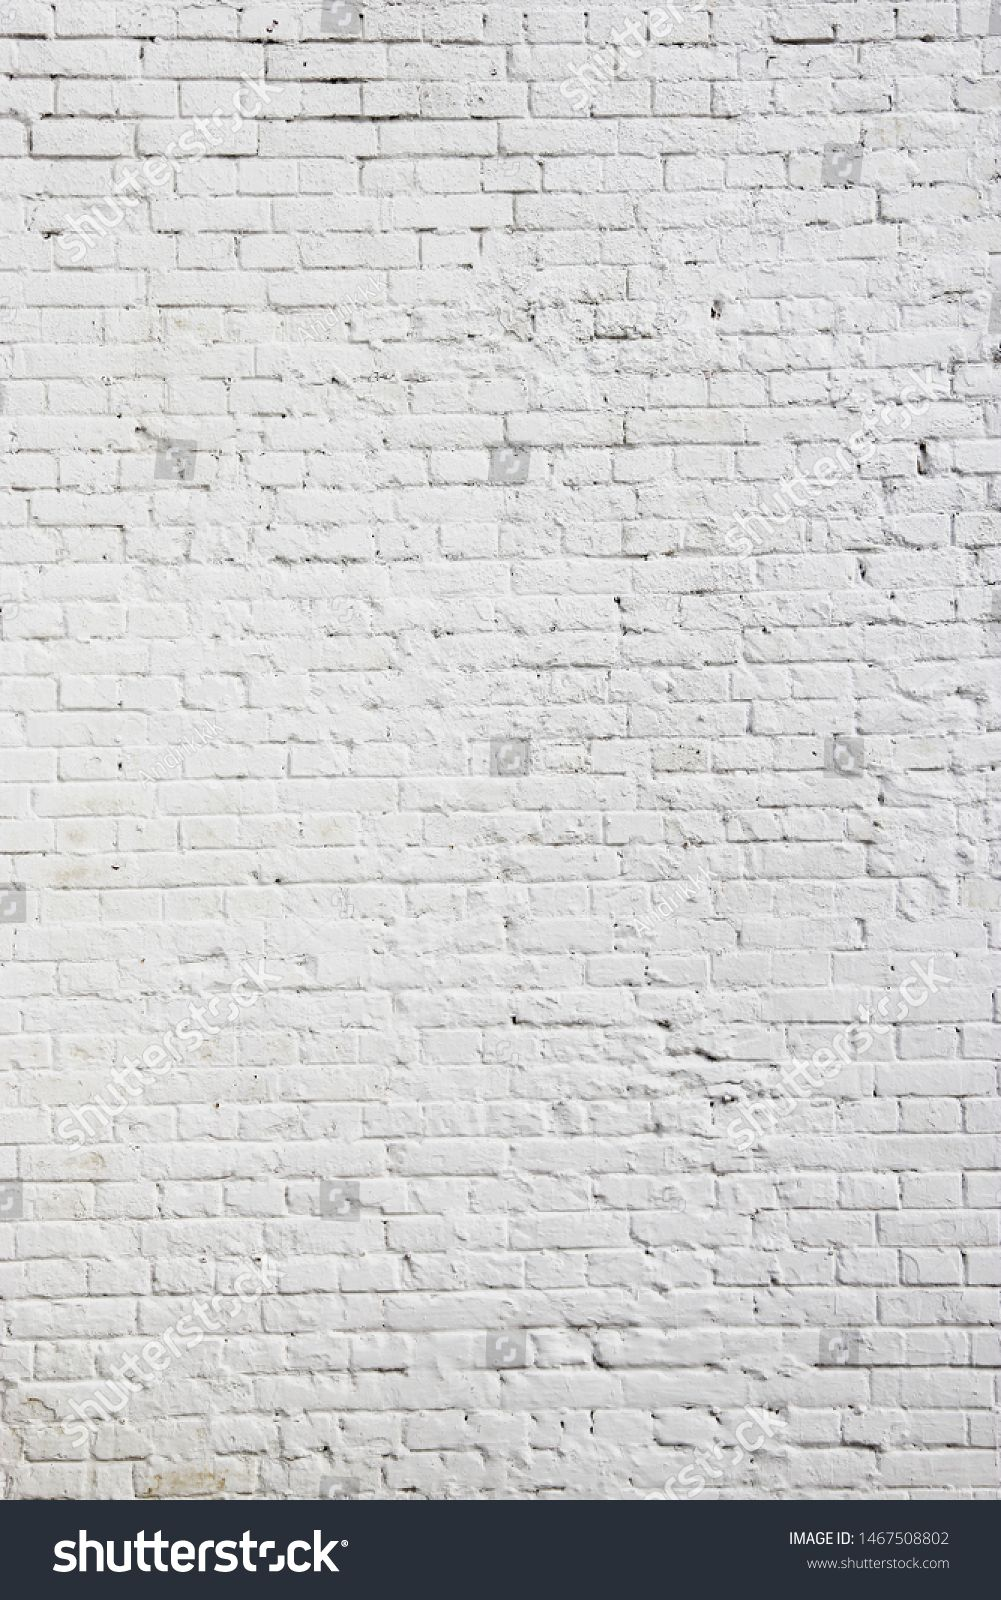 Old Rough White Brick Wall Texture For Background Sponsored Affiliate Brick White Rough Background White Brick Walls White Brick Textured Walls